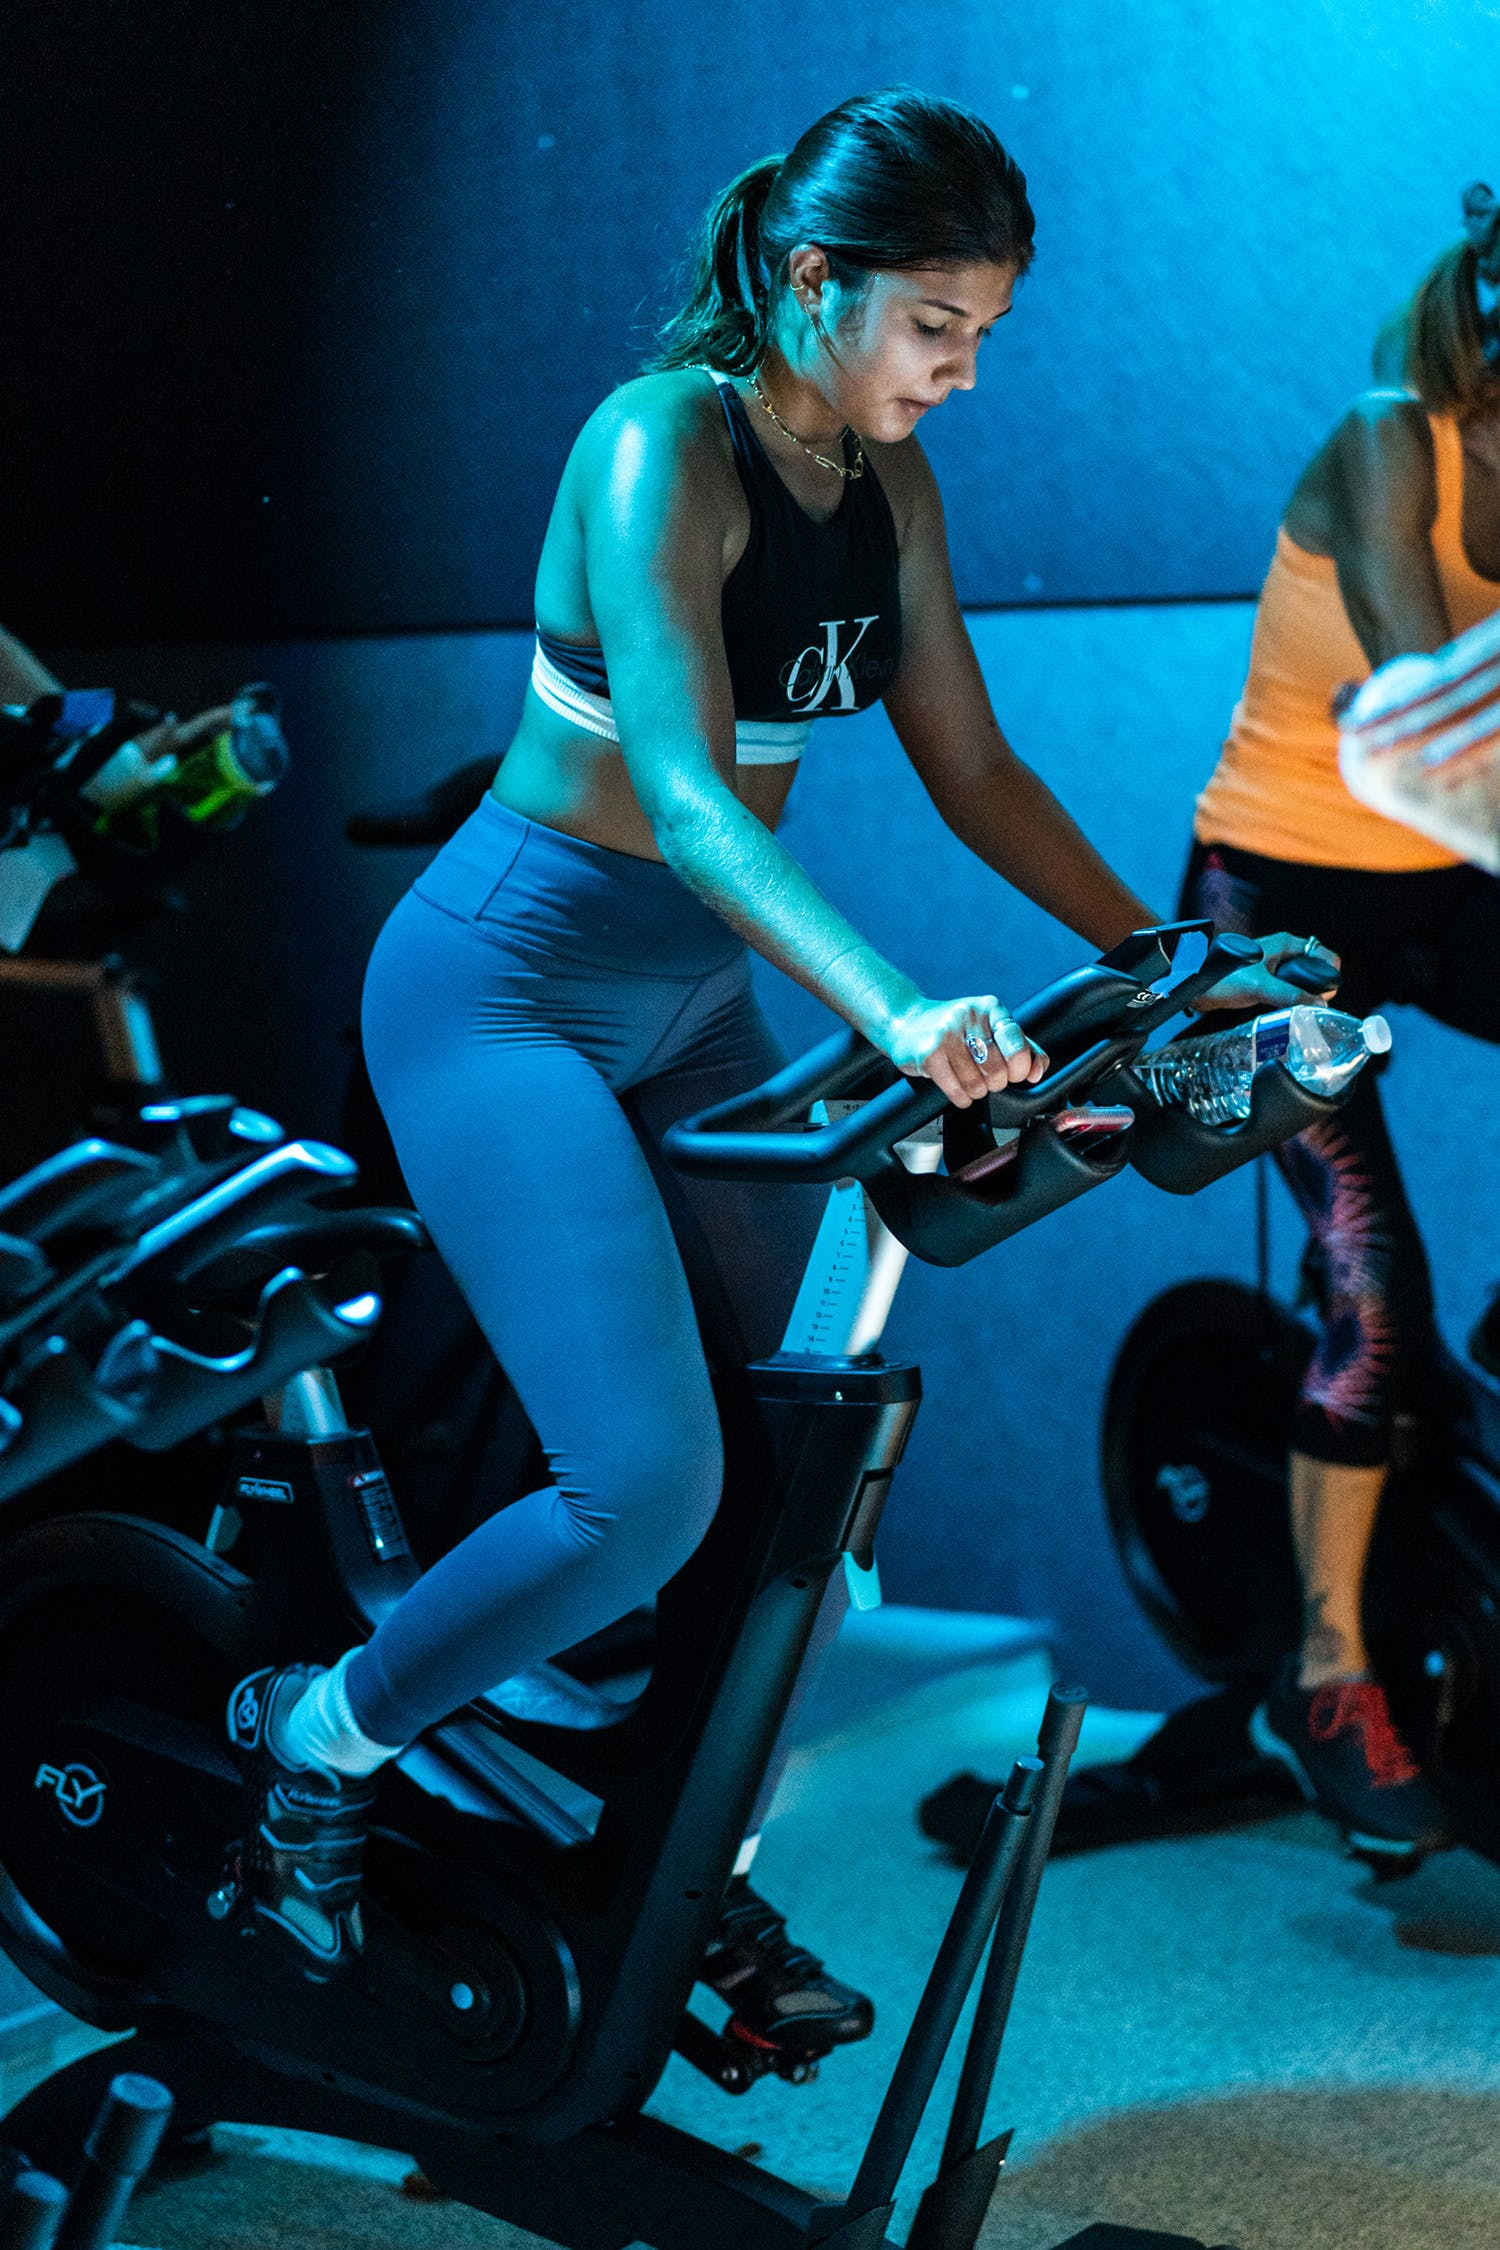 Blue light shining on cycle and pump class